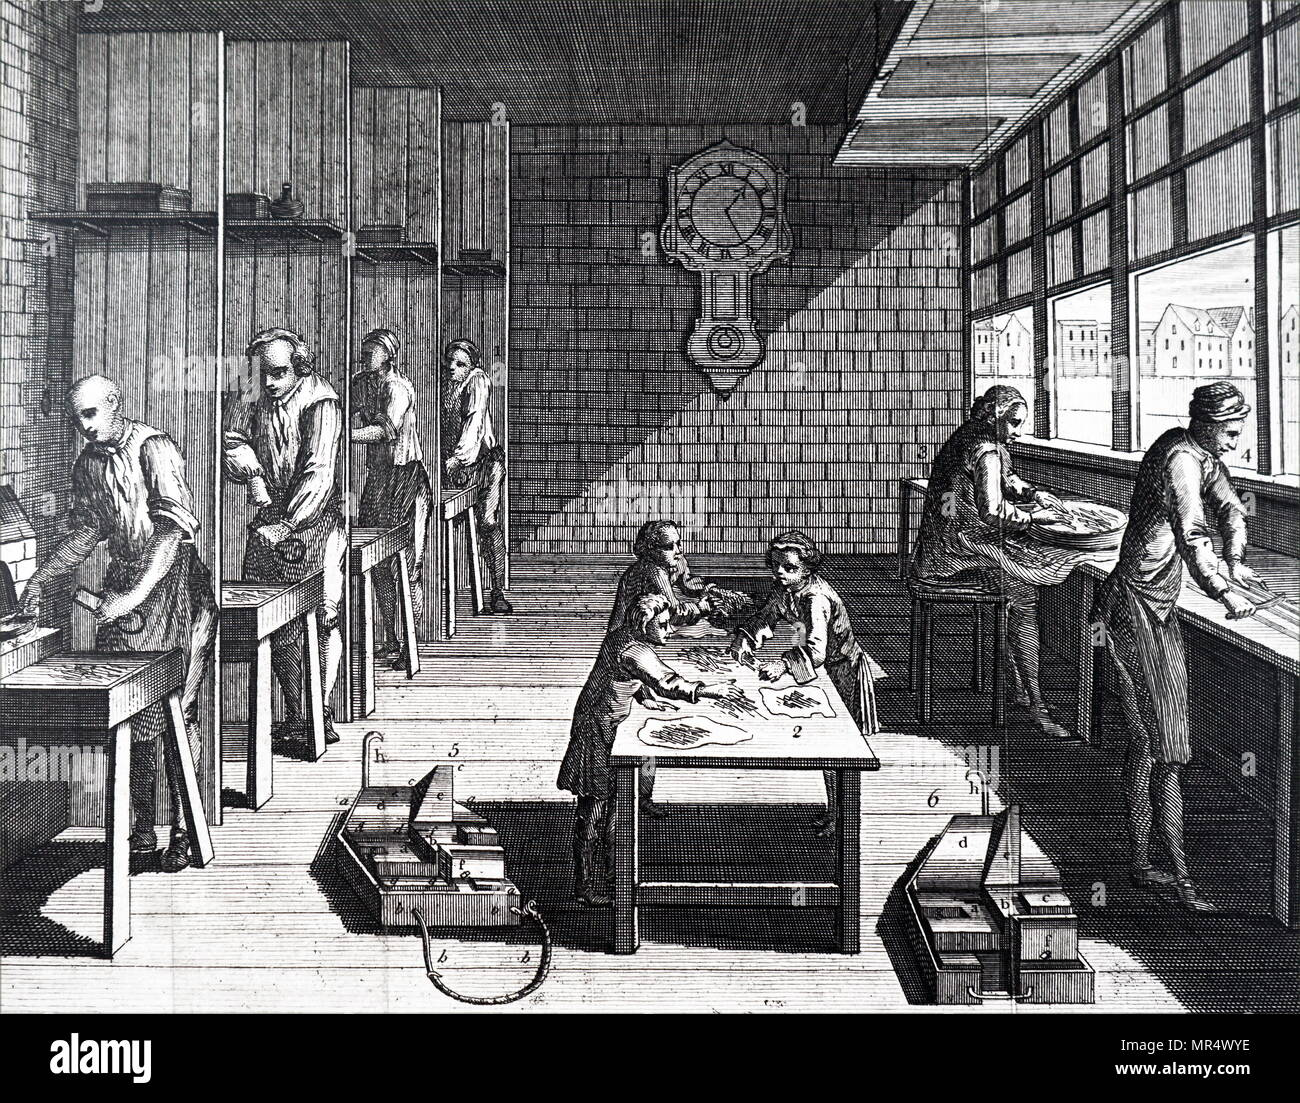 Illustration depicting the process of casting type: At 1) on